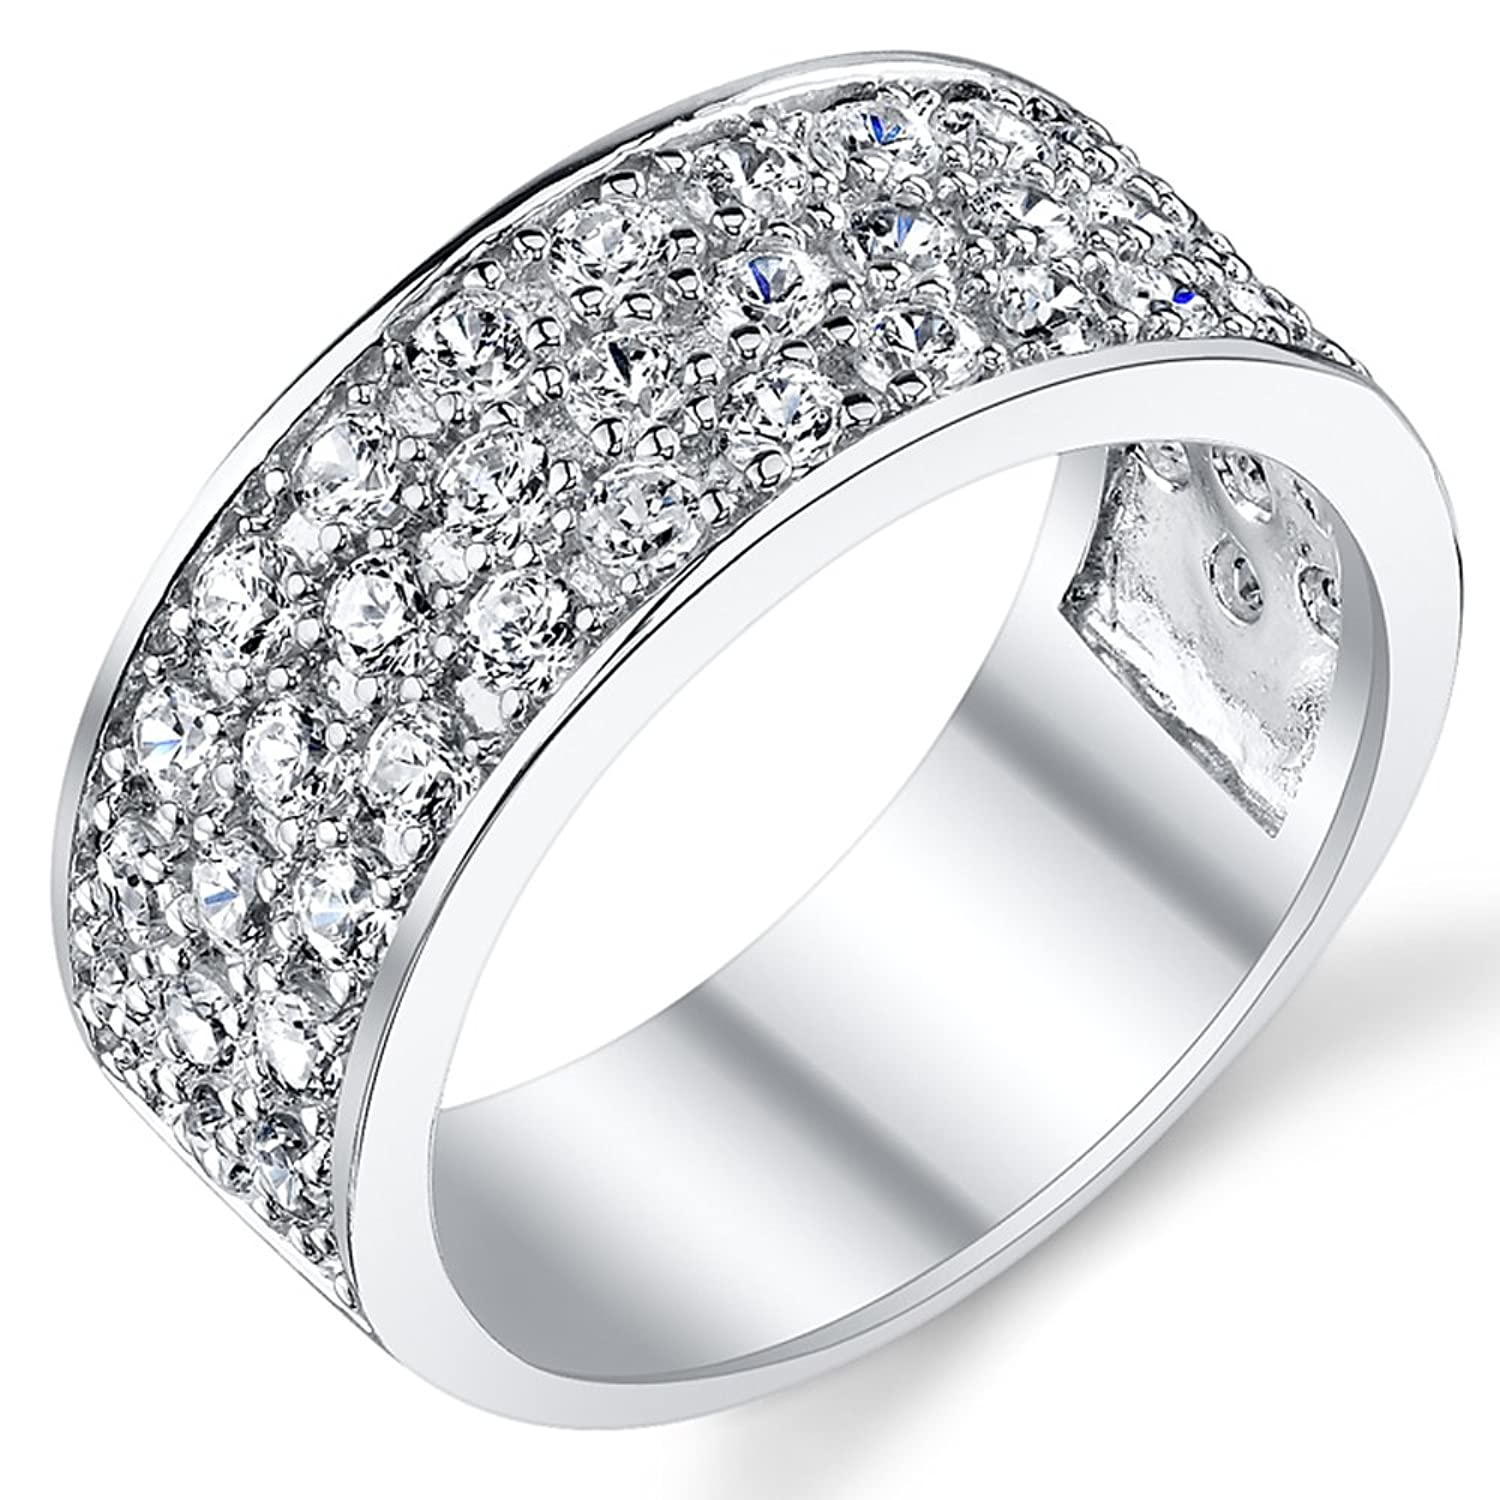 by cathedral and solitaire ring center shown engagement white wide natalie band carat with diamonds gold diamond bands product platinum a